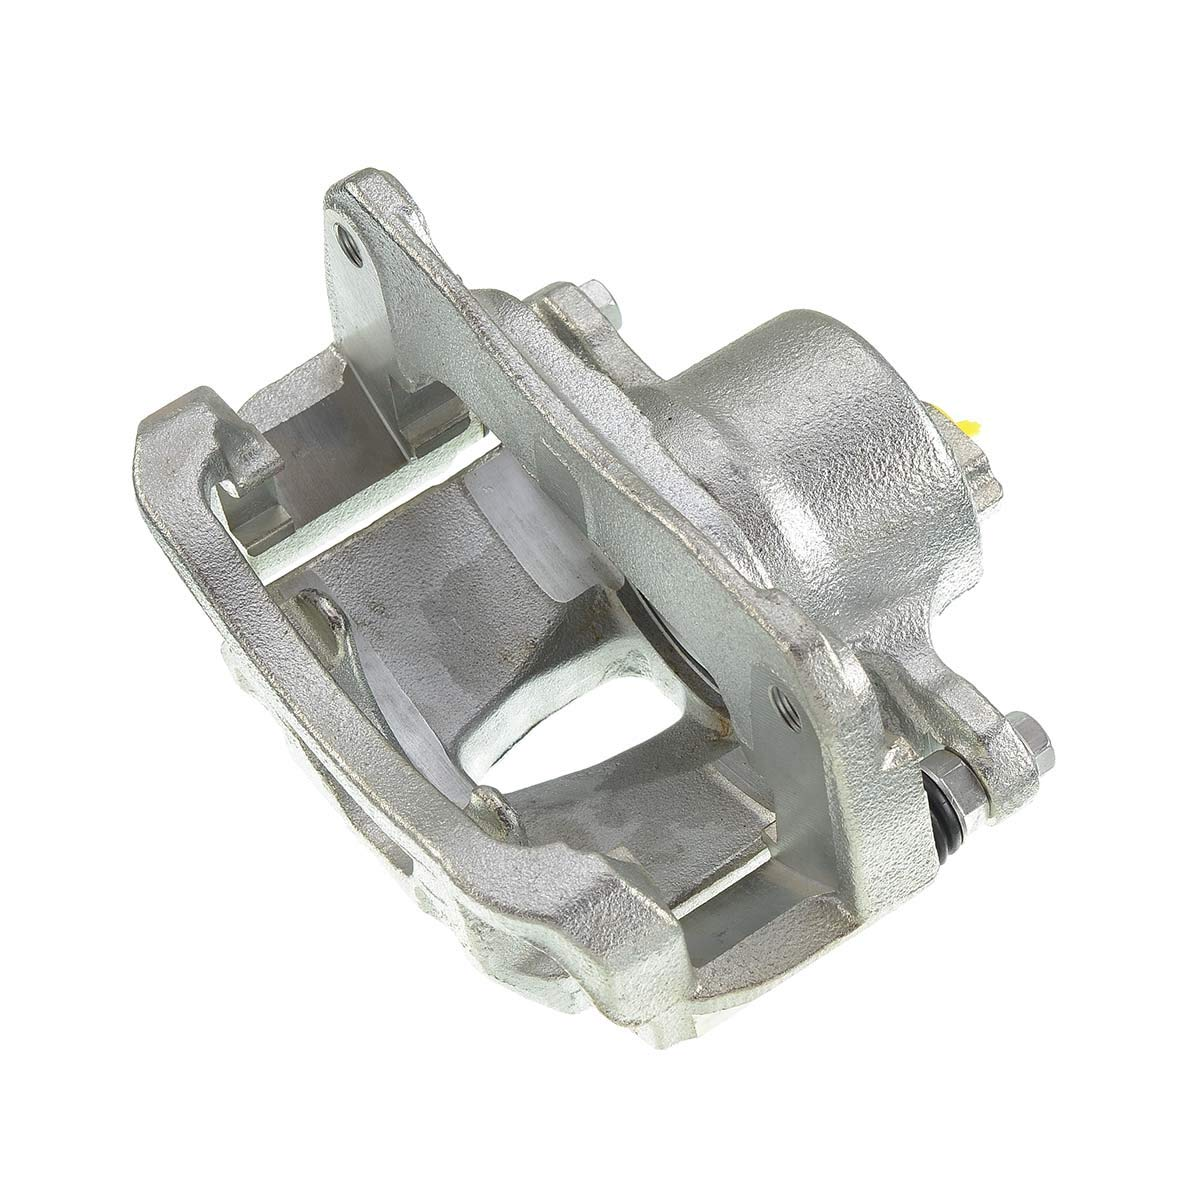 A-Premium Brake Caliper with Bracket for Toyota Avalon Sienna Solara 2004-2010 Front Left and Right 2-PC